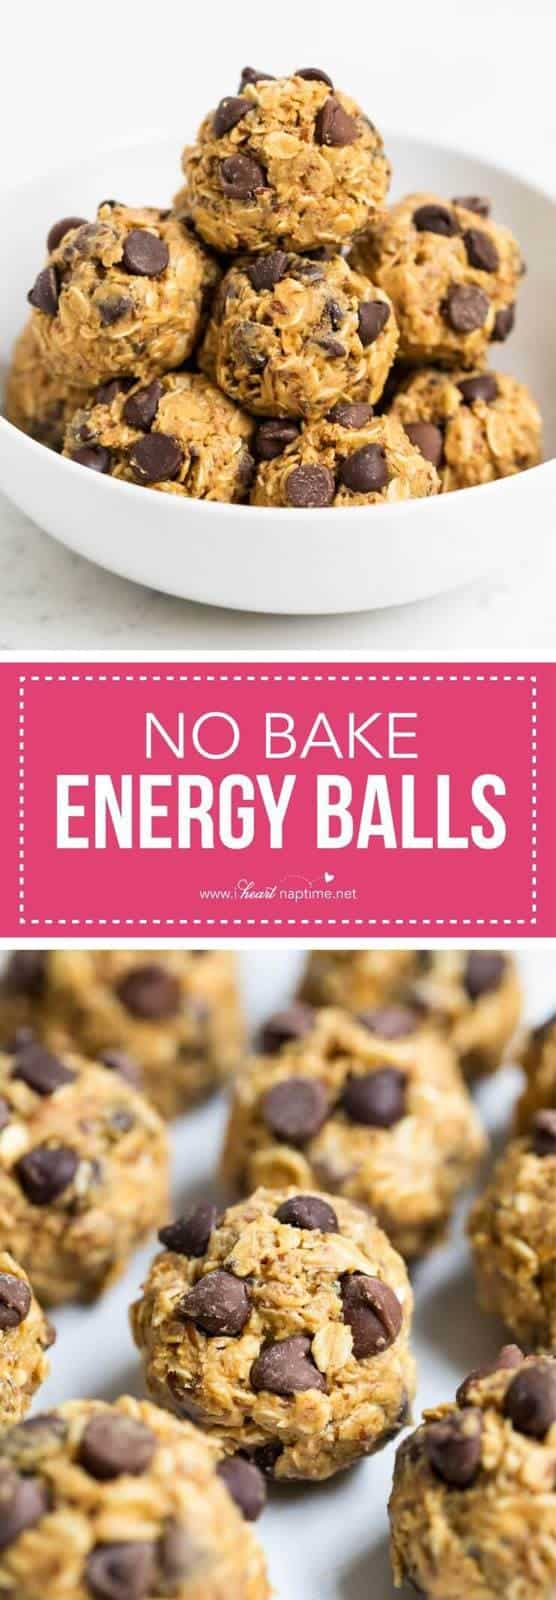 These no bake energy balls make the perfect breakfast, snack or even dessert. So delicious and only take 5 minutes and 5 ingredients to make!